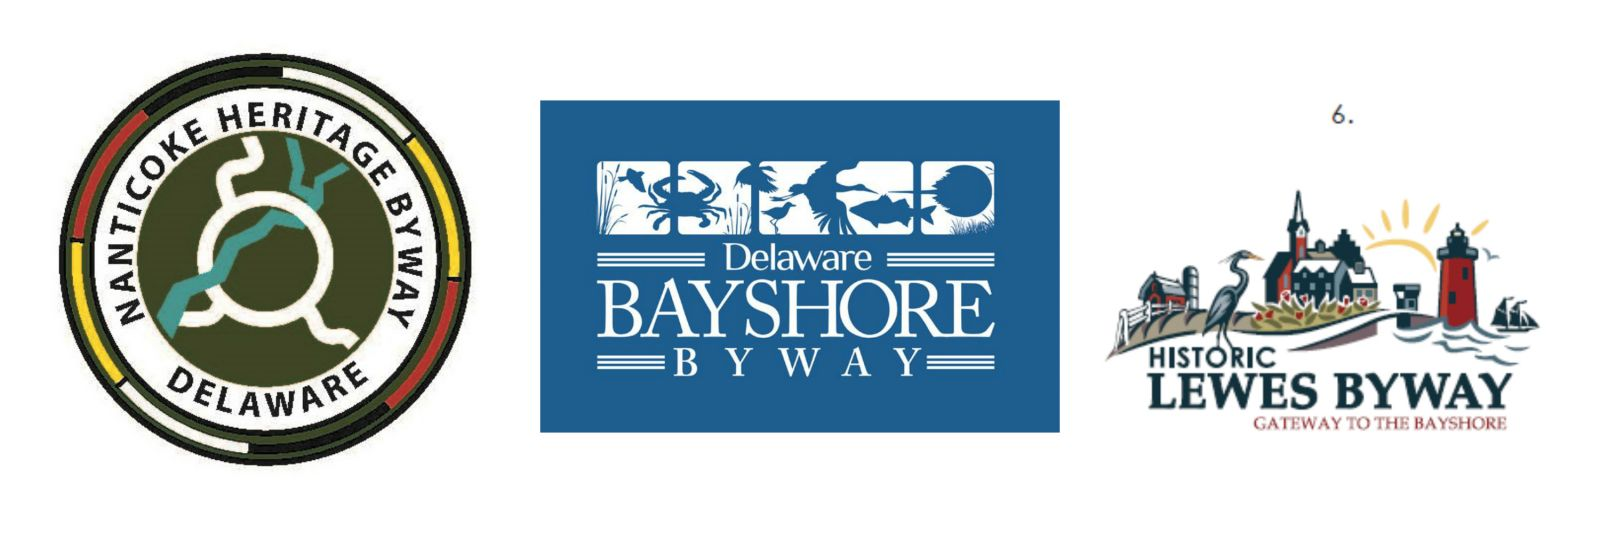 Lewes byway bayshore byway nanticoke heritage byway southern delaware tourism